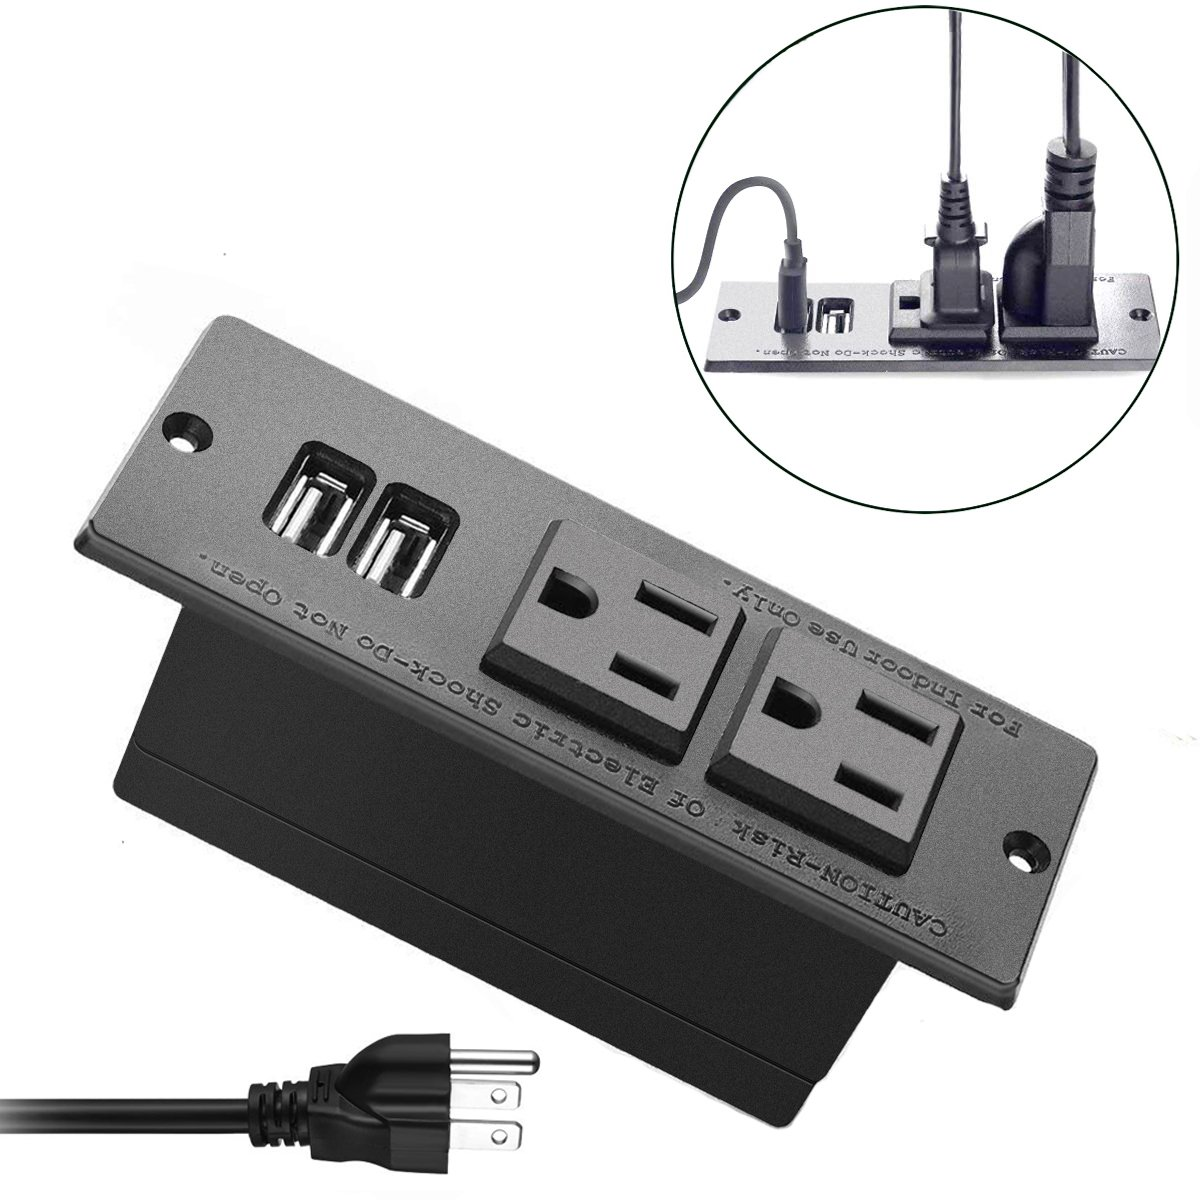 Conference Recessed Power Strip Socket with Surge Protector 9.8ft Desktop Power Cord -2-Outlet with 2 USB Ports(3m cord)